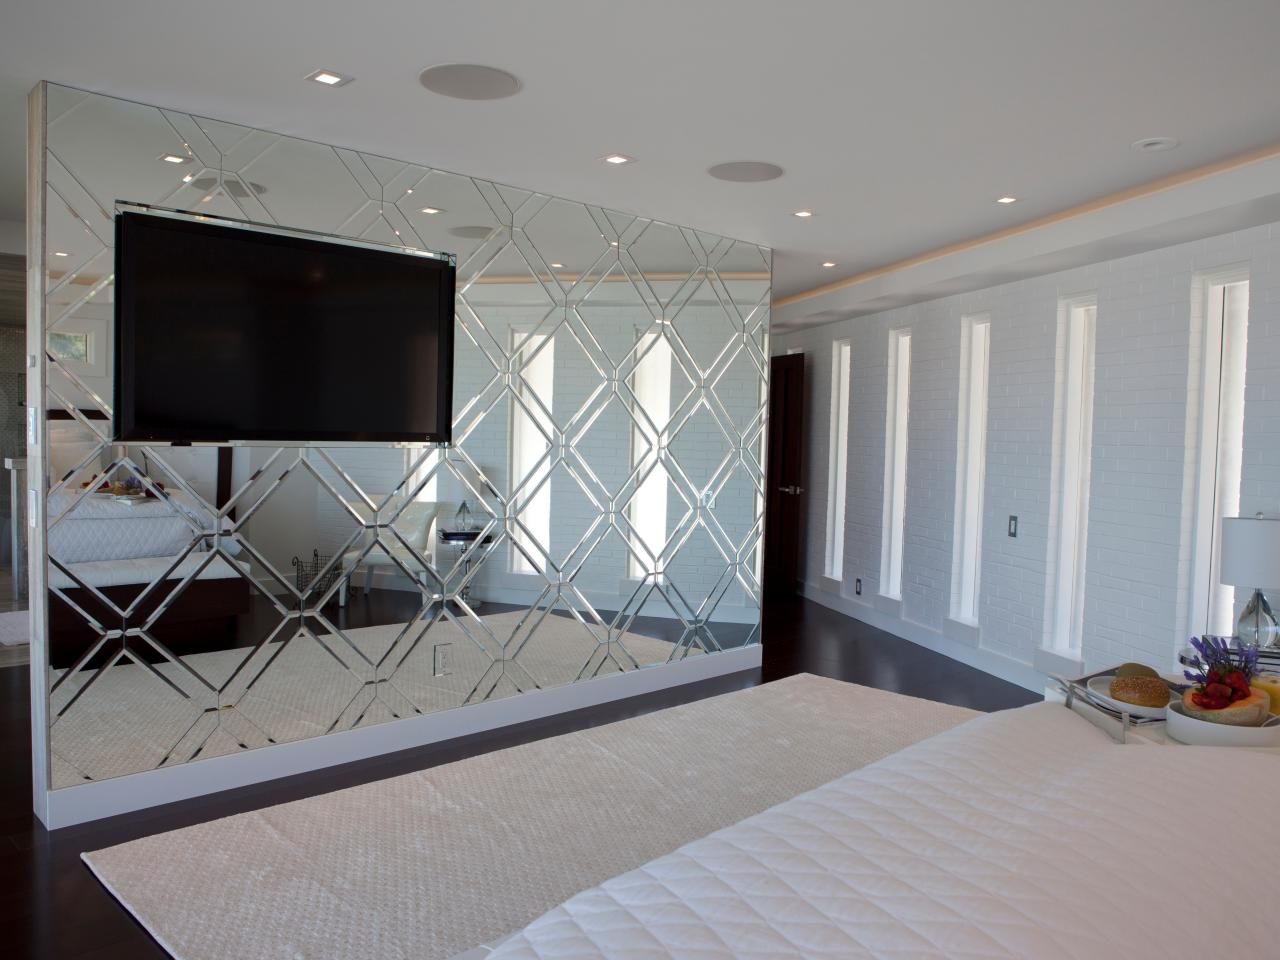 Large Floor To Ceiling Wall Mirrors Throughout Well Known Bedroom Wall Mirror Houzz Design Ideas Bathroom Mirrors Simple (View 10 of 20)